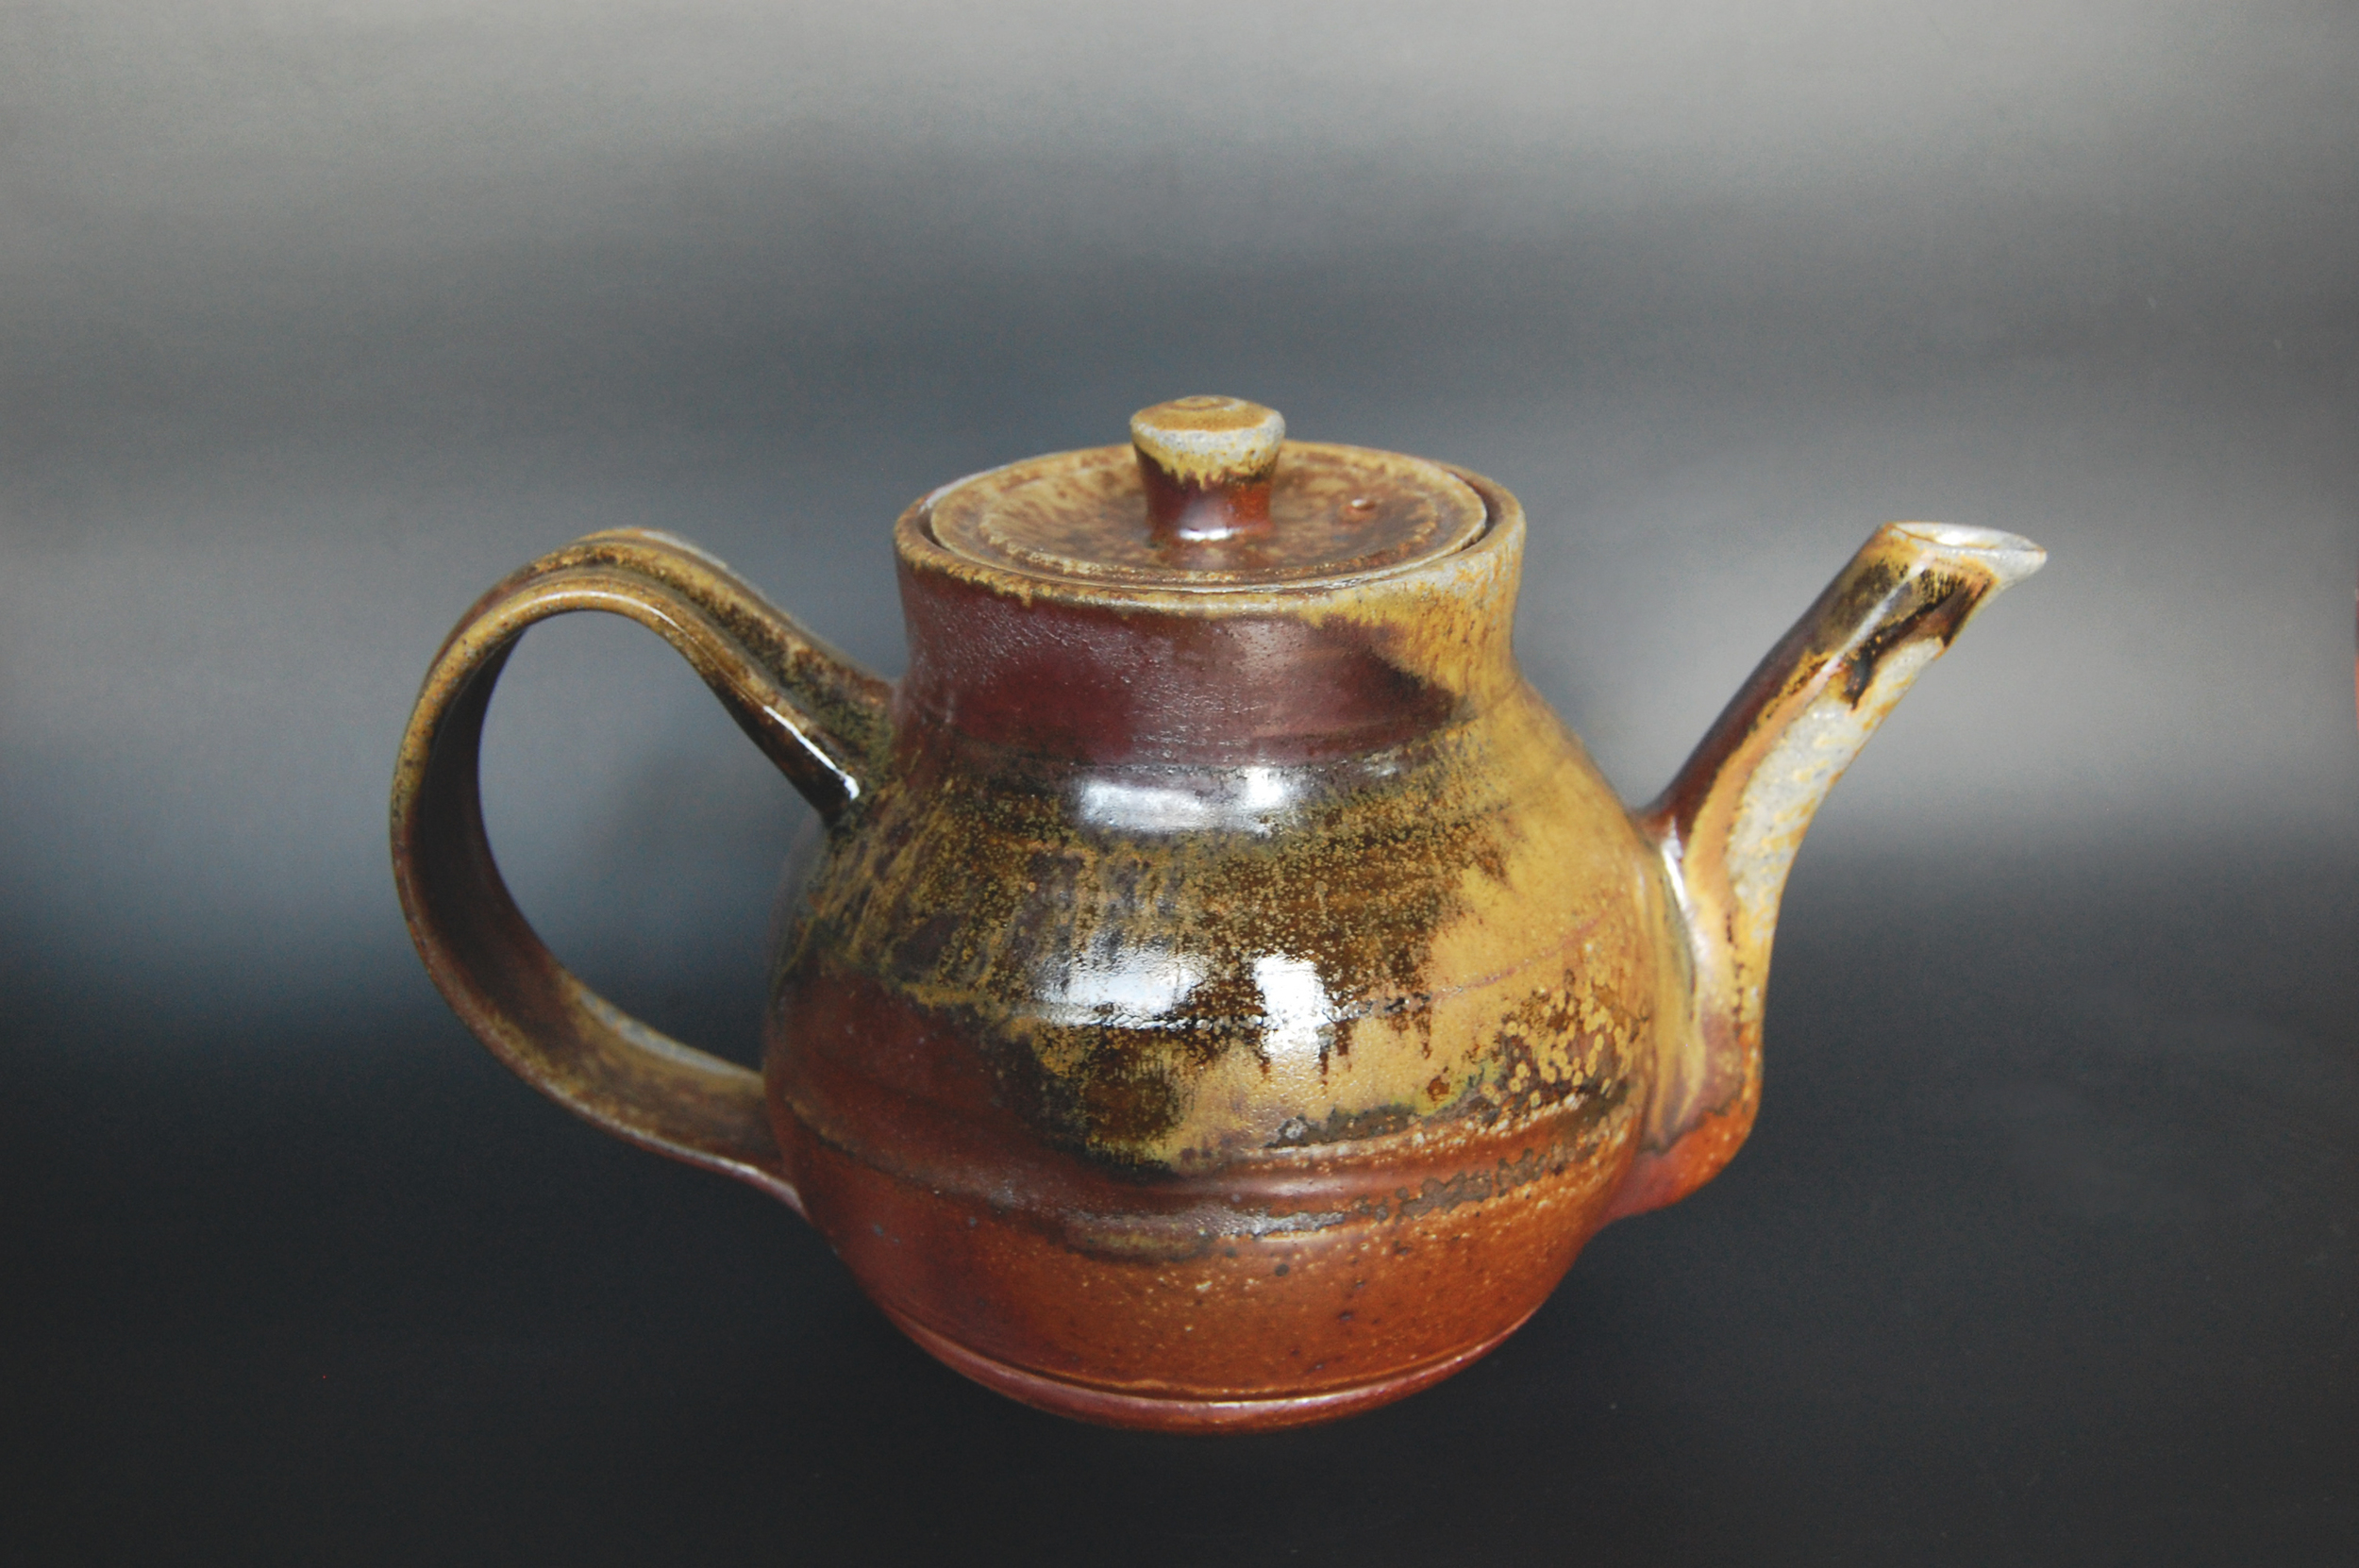 The wood fired teapot.